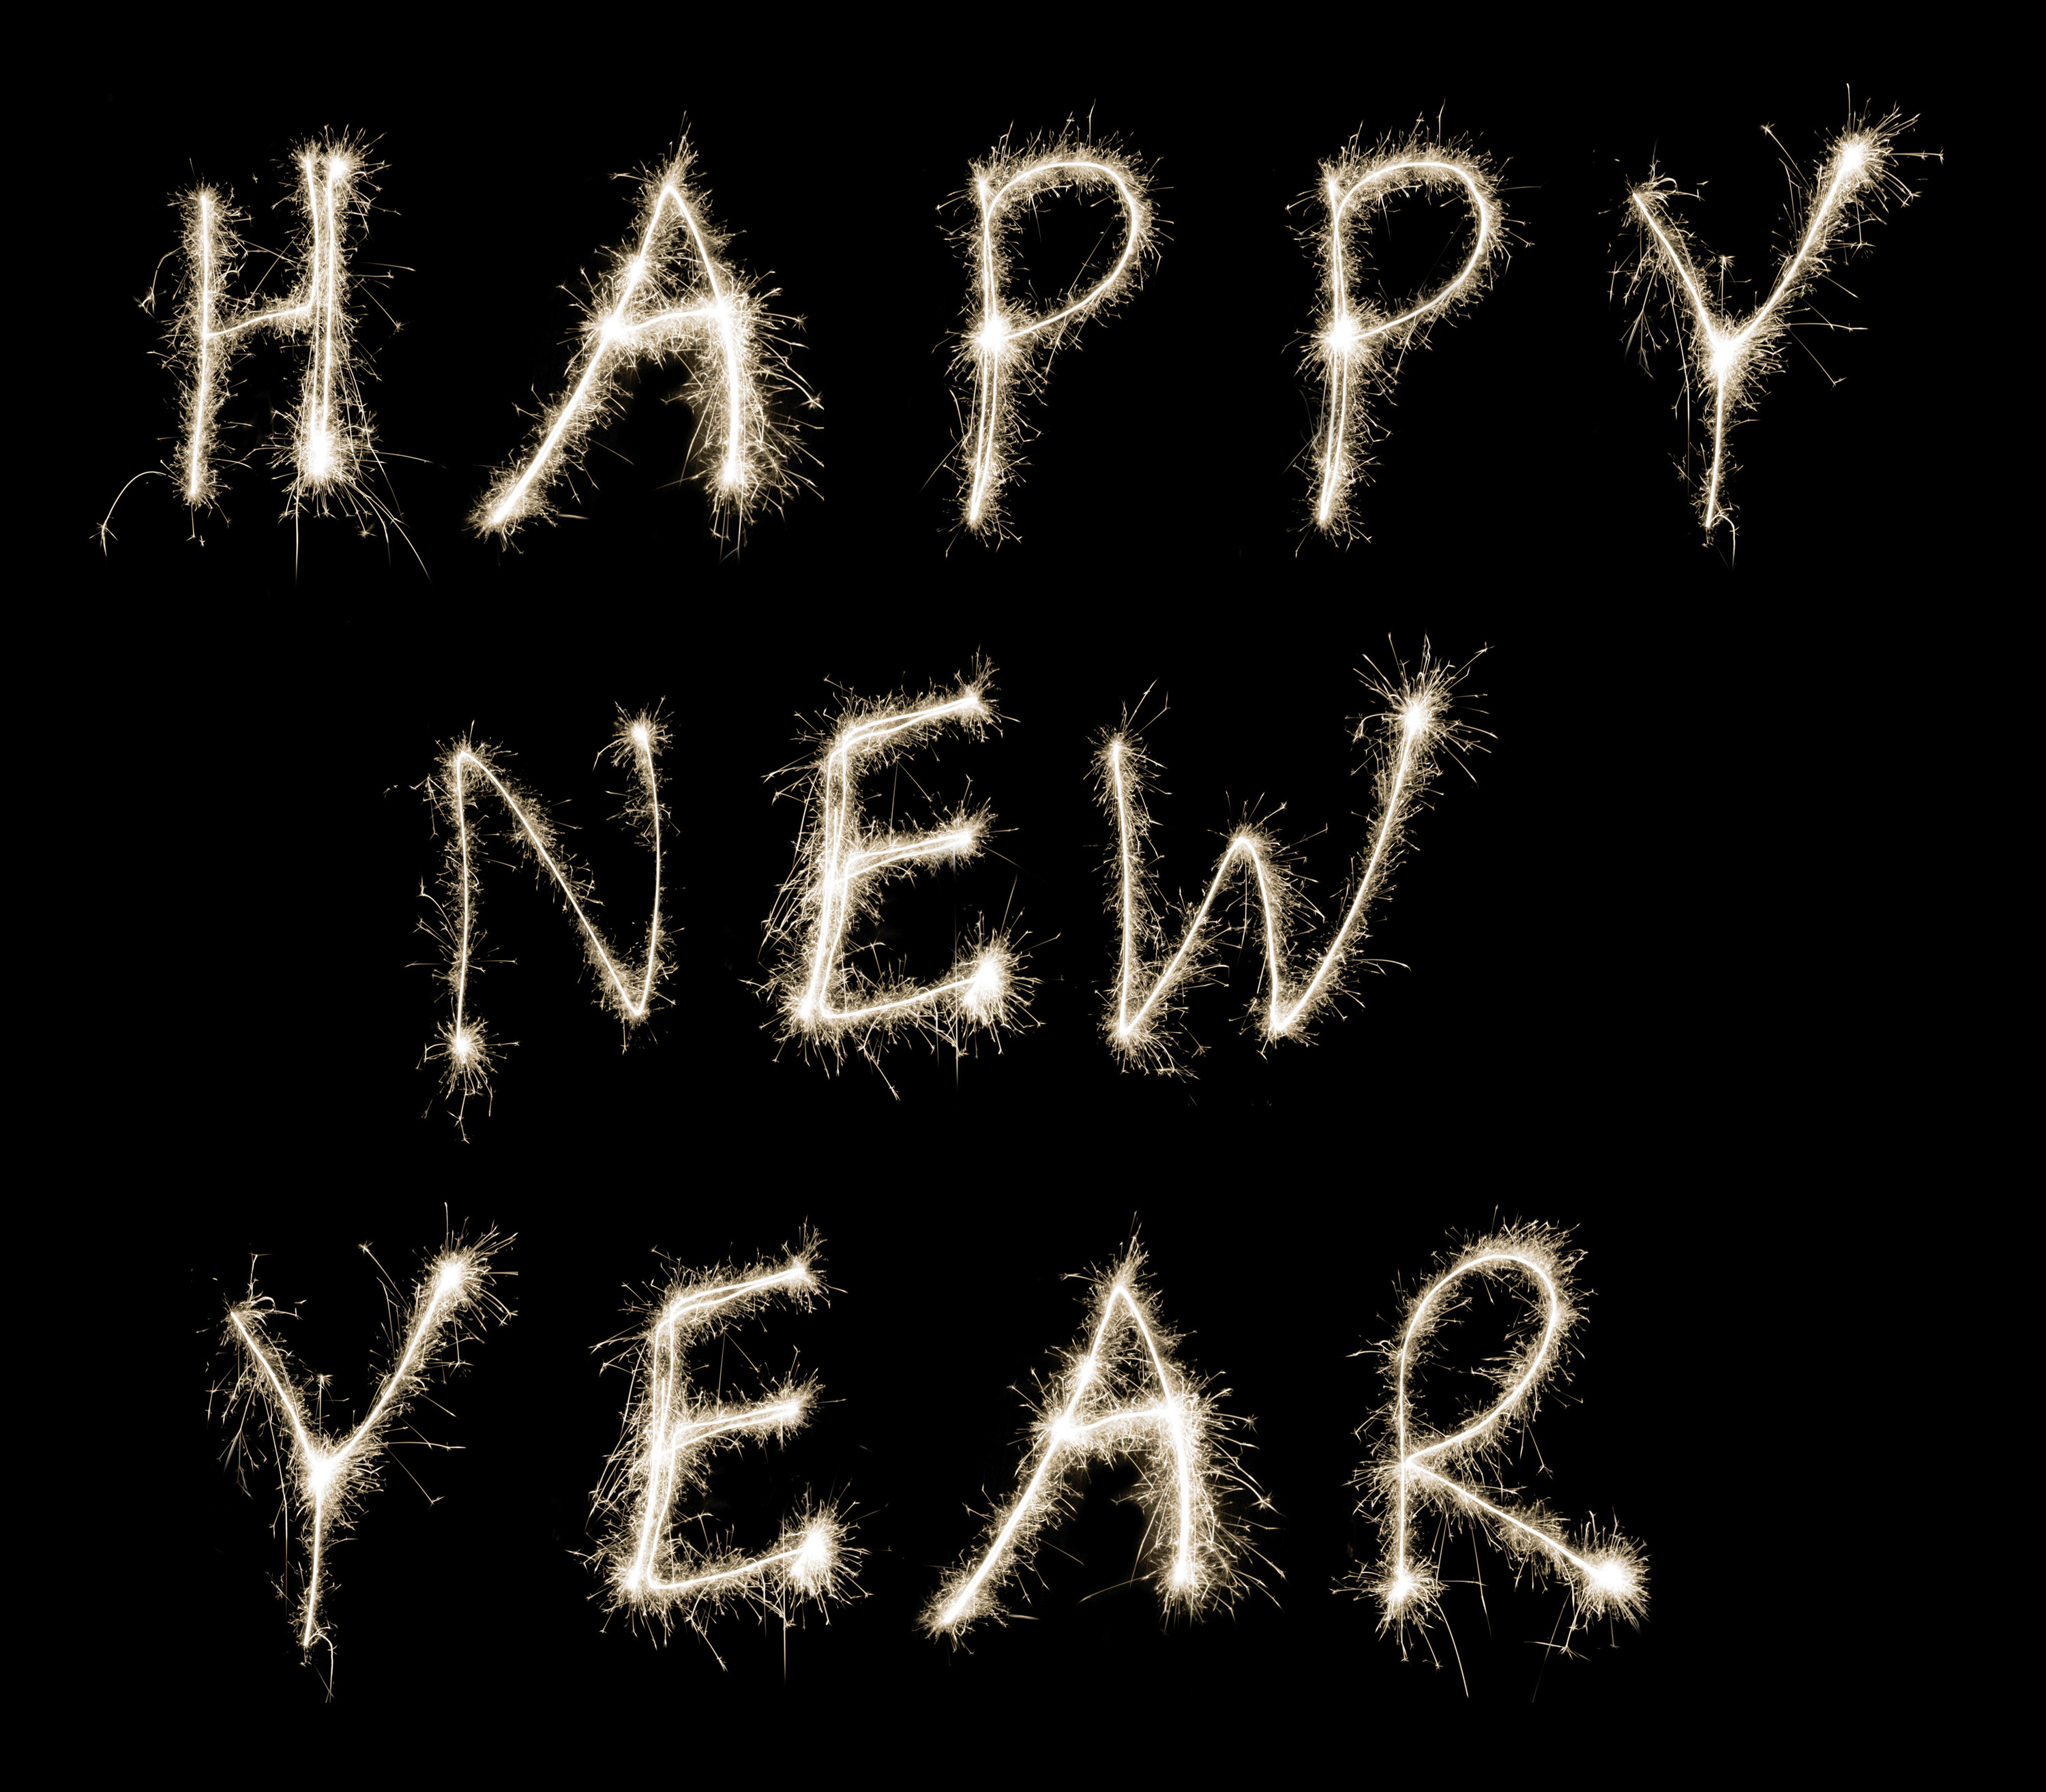 happy new year text written in fiery white sparklers on a black background to welcome in